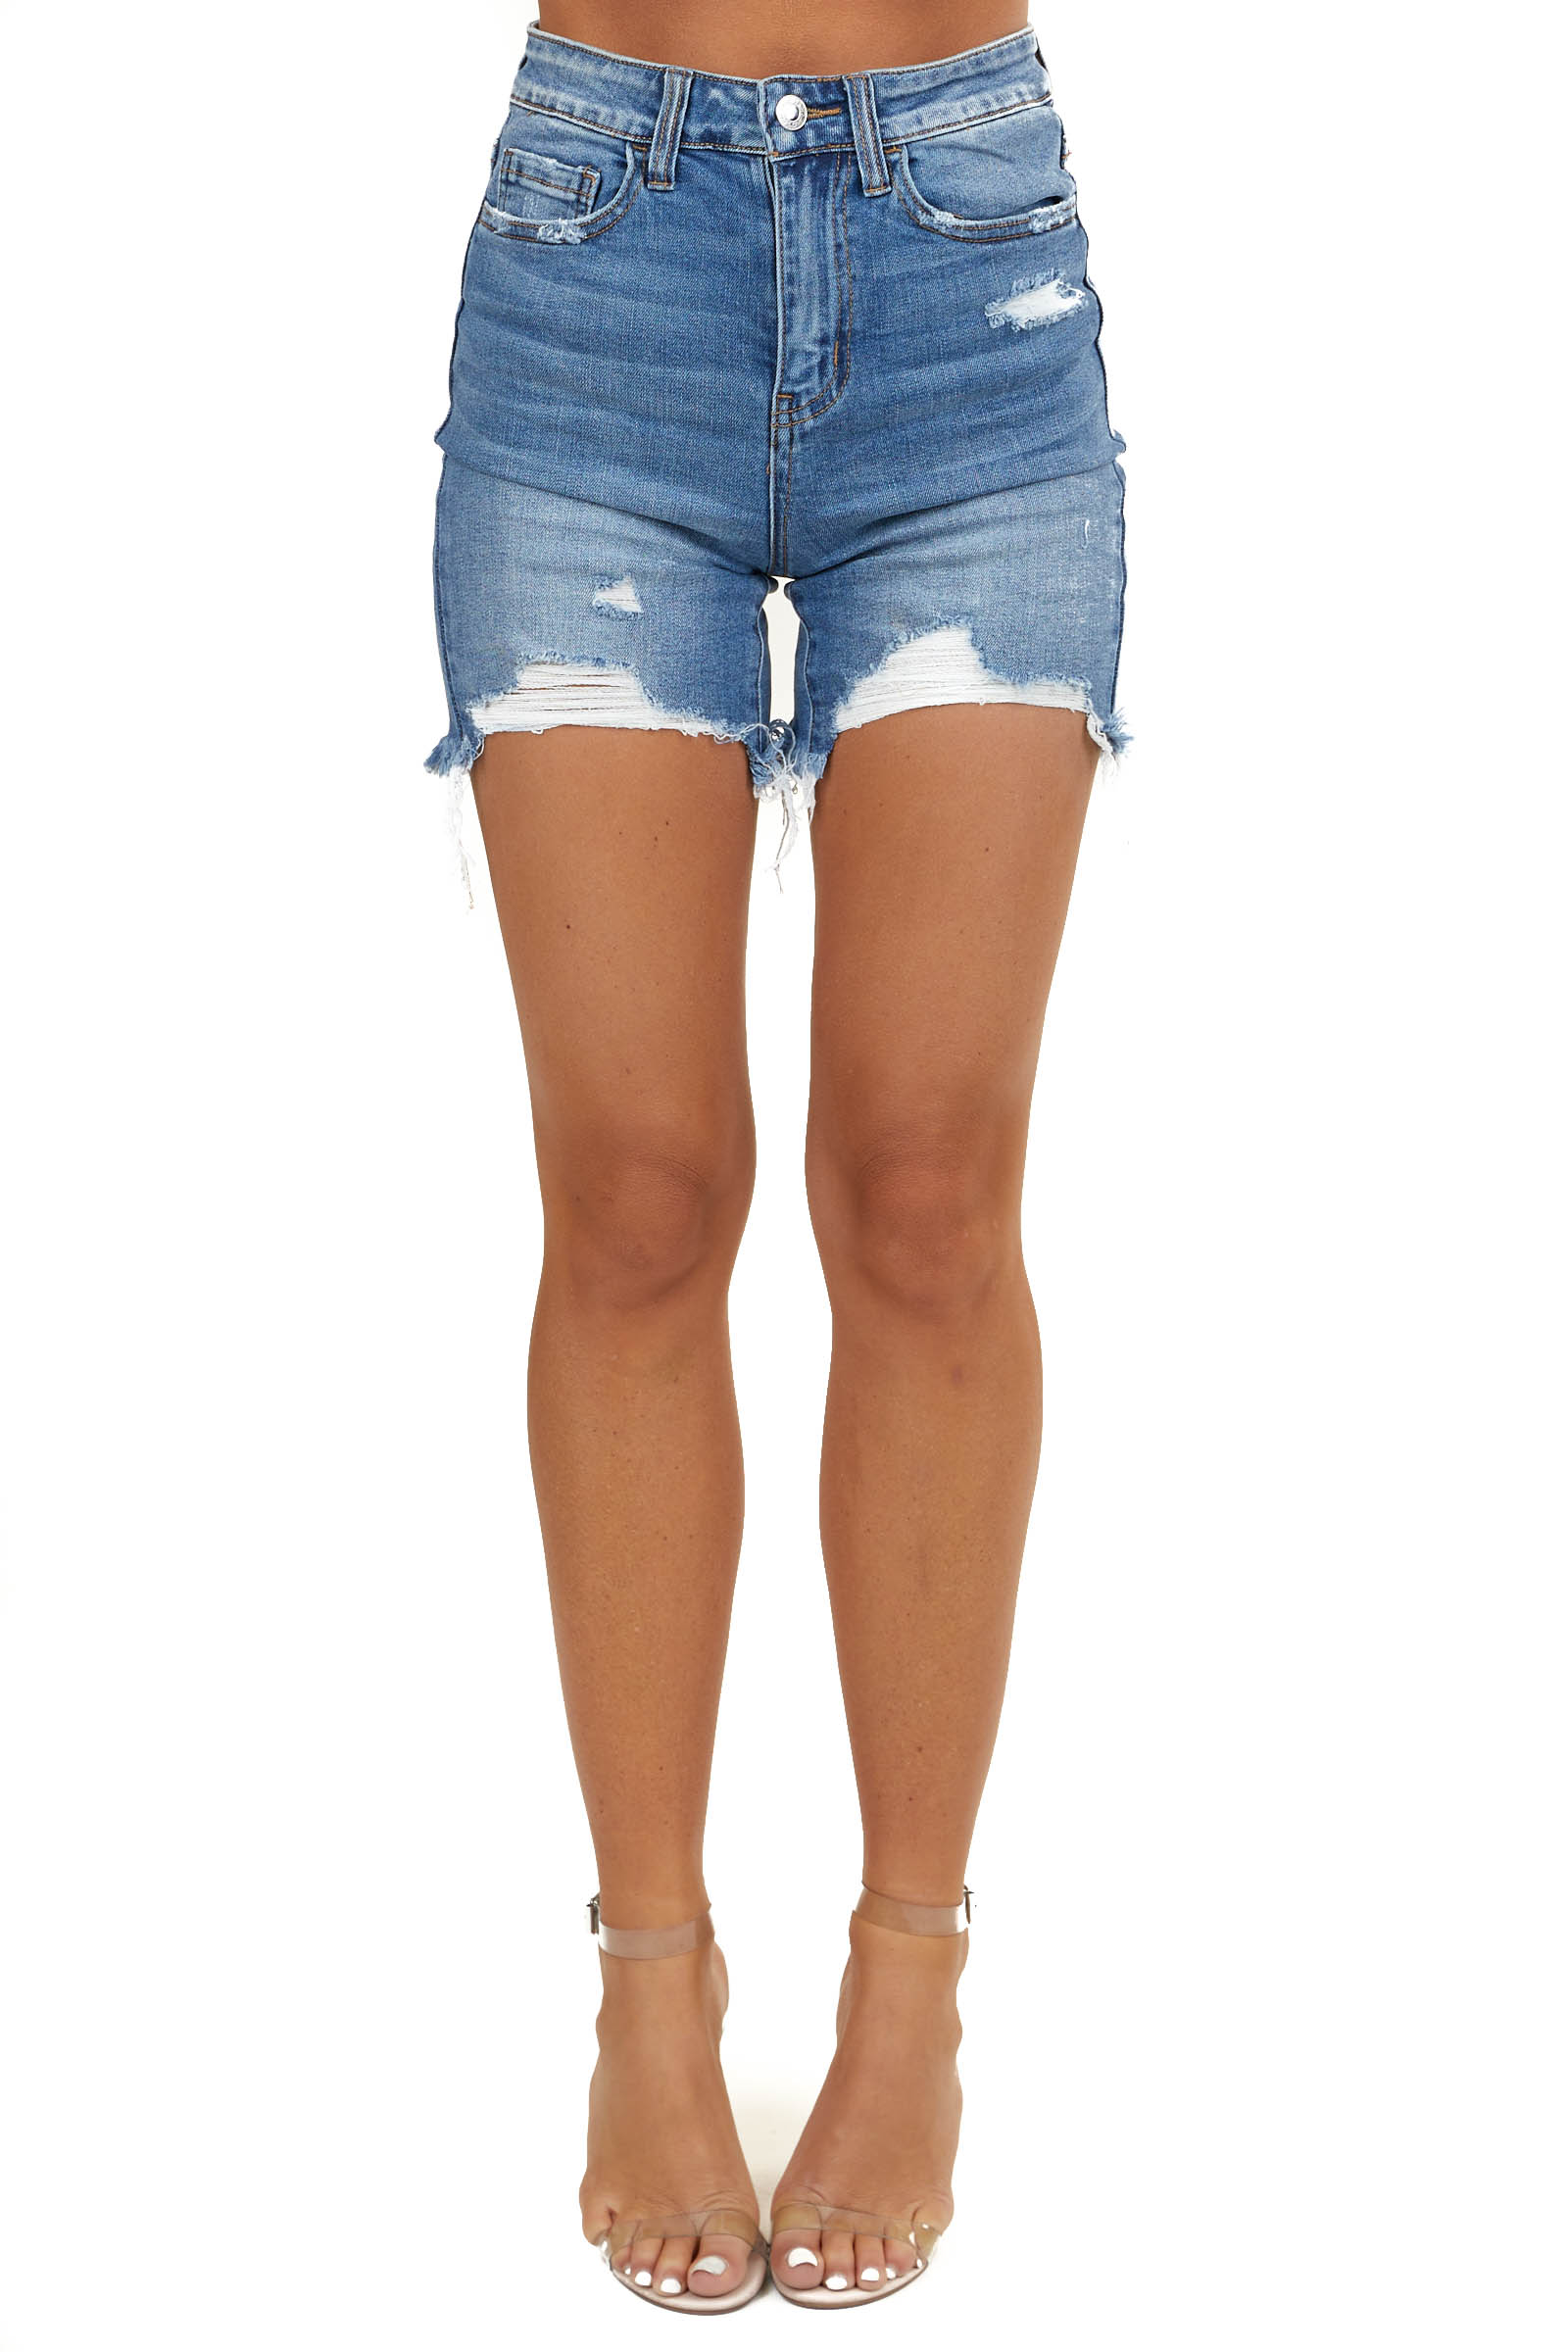 Medium Wash Denim Super High Waisted Distressed Shorts